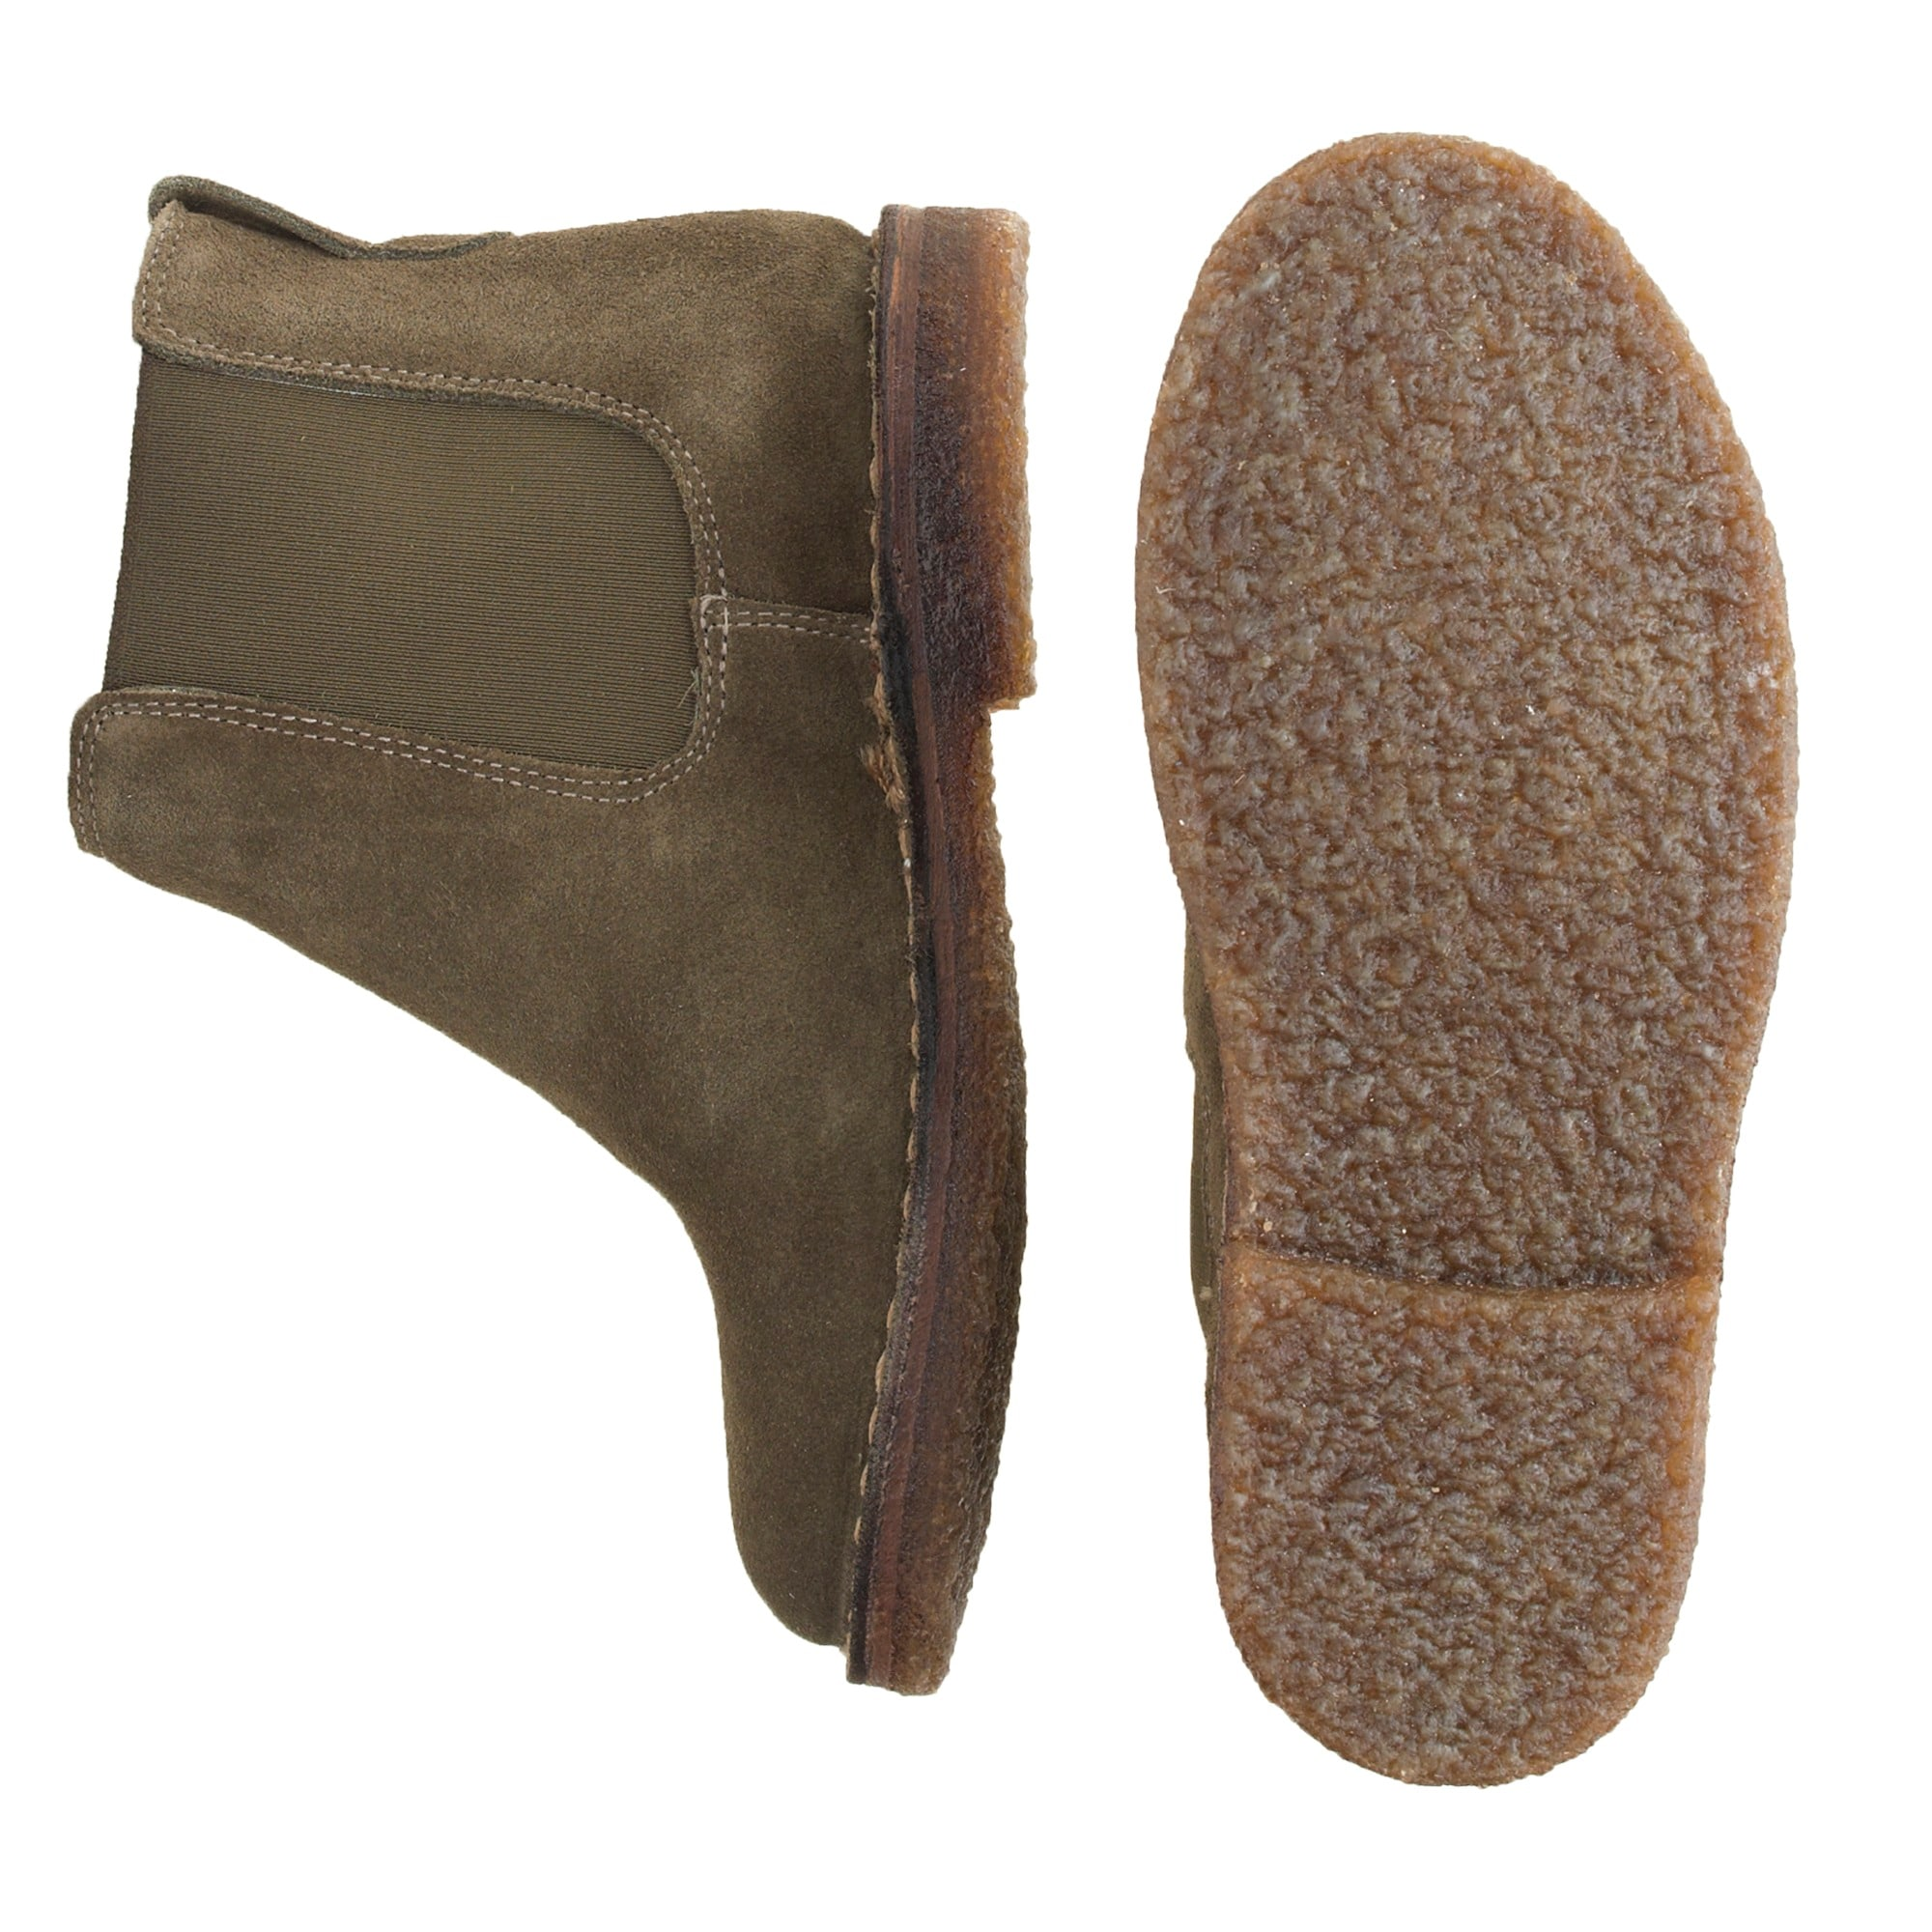 Image 2 for Boys' suede shearling-lined Chelsea boots